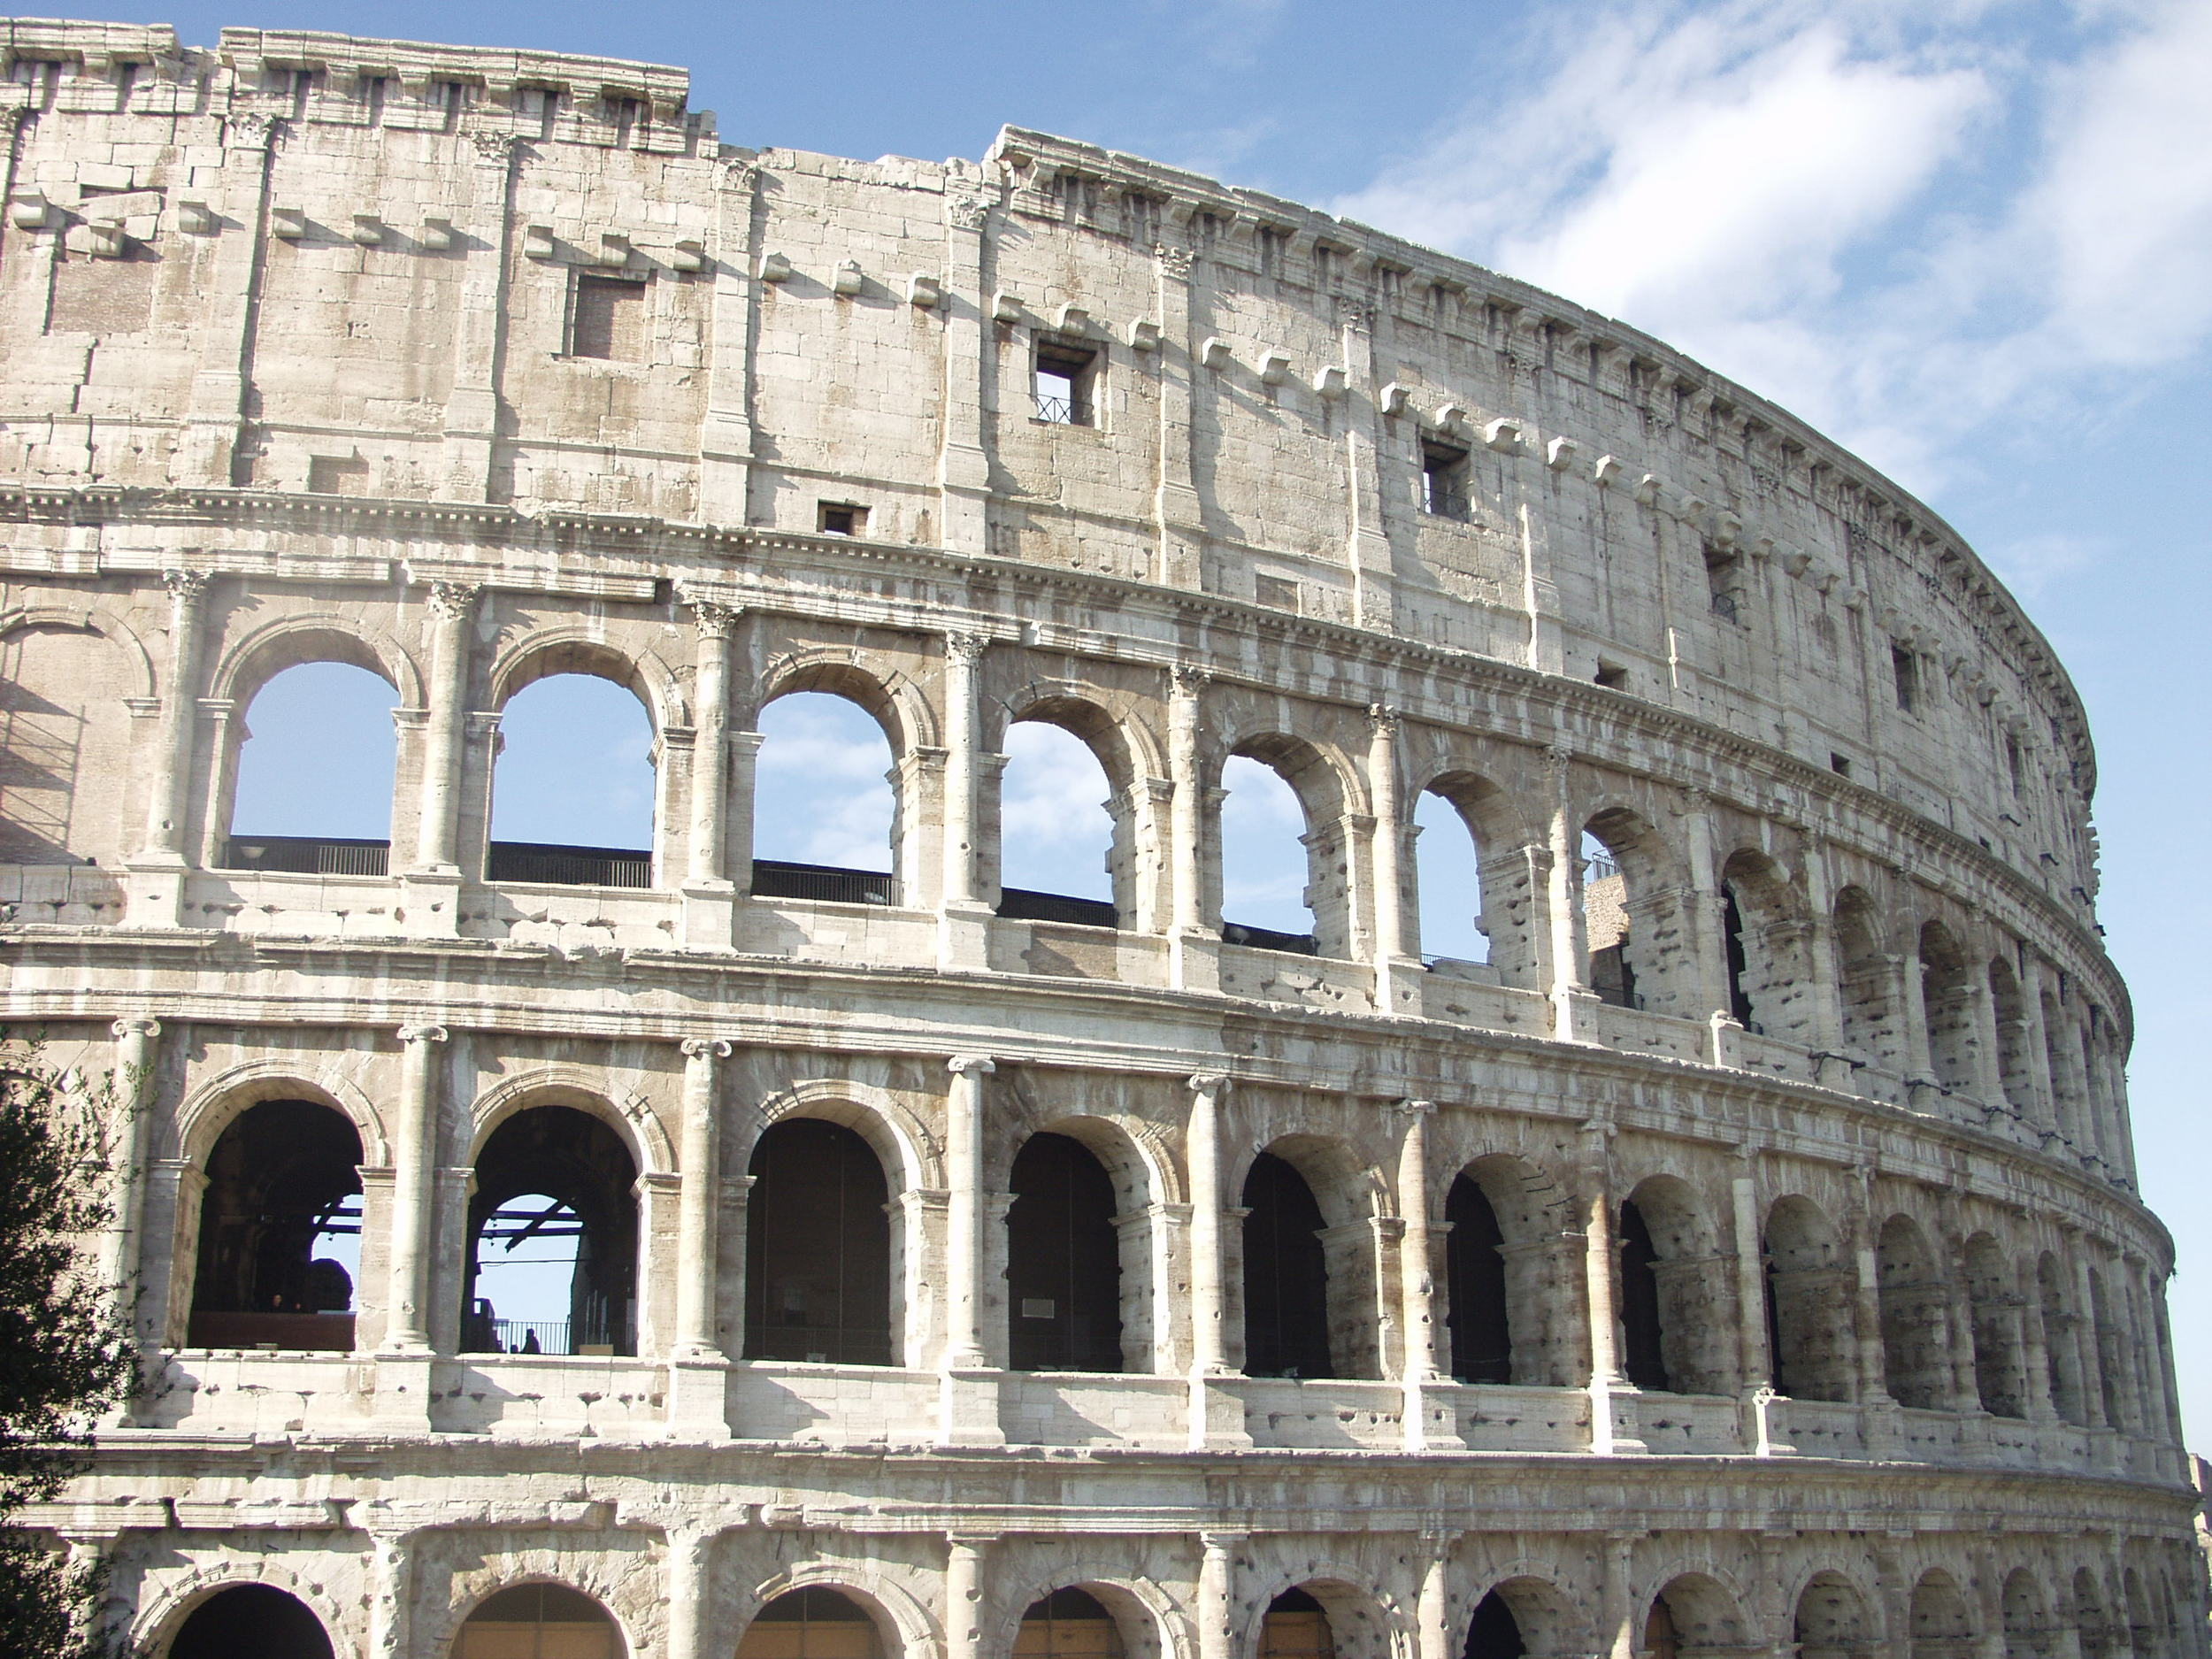 Colosseum in Rome. This amazing structure is almost 2,000 years old